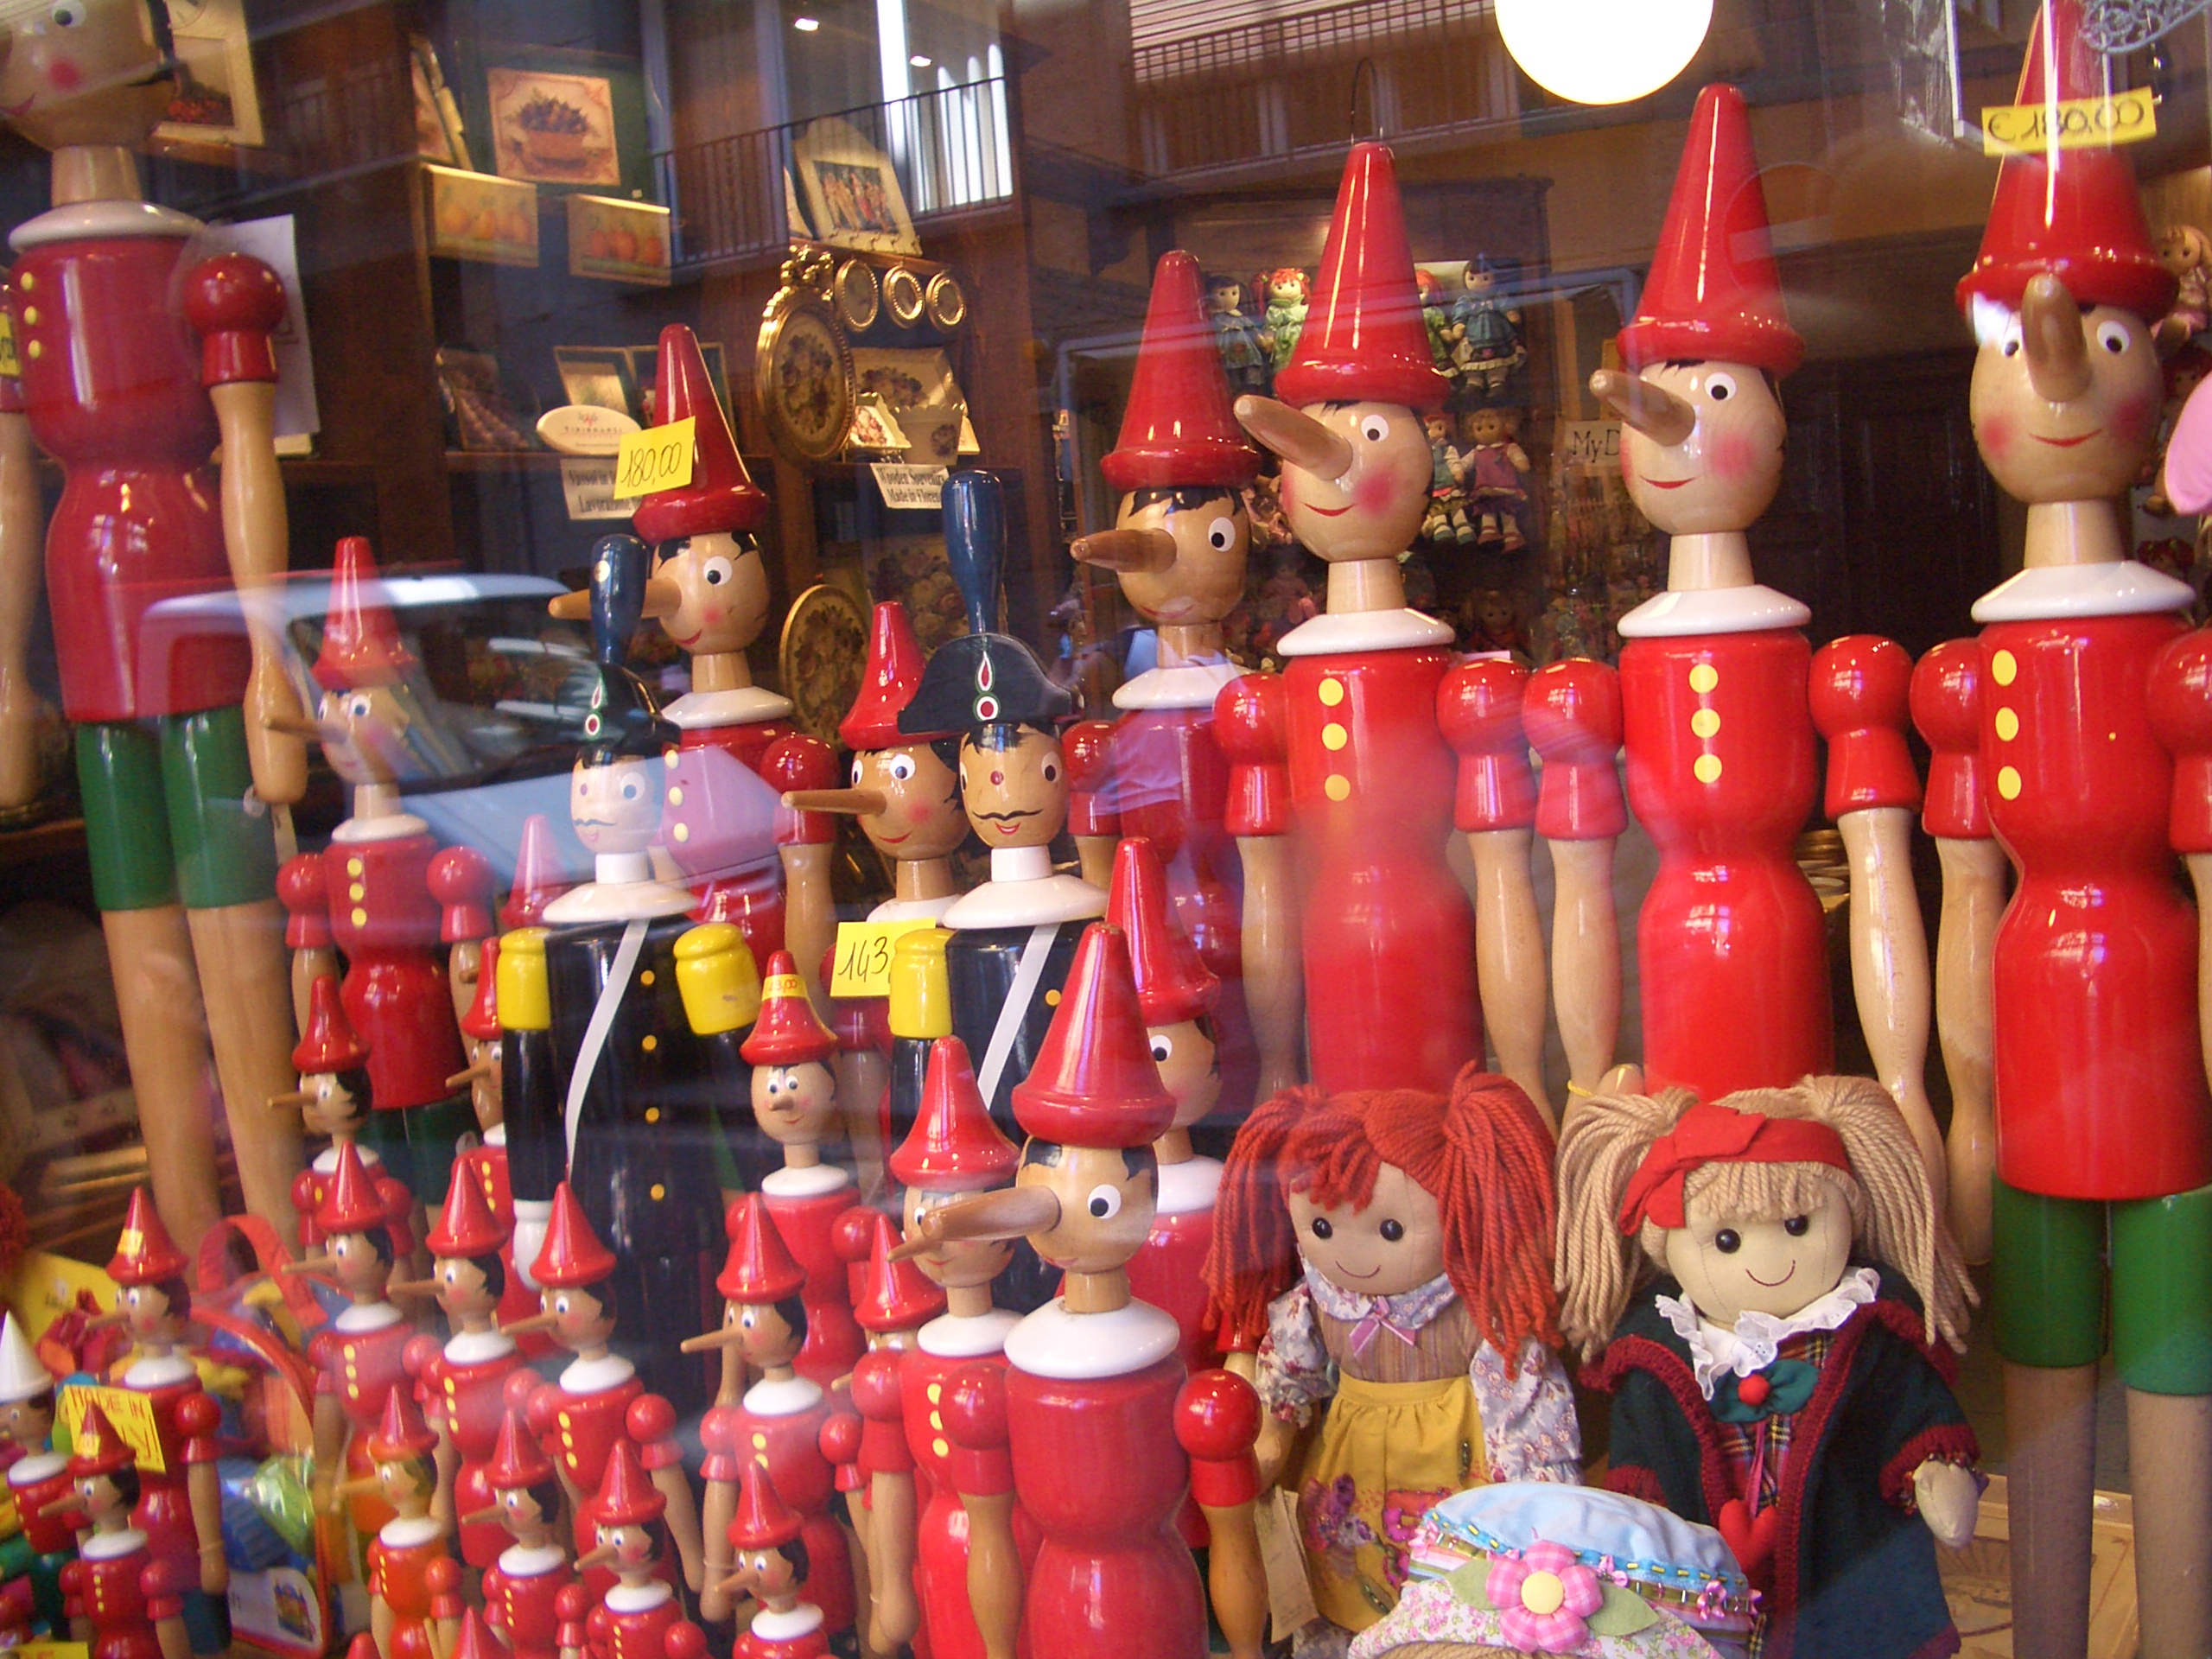 Pinocchio dolls in a shop window in Florence. Photo taken by <a href+